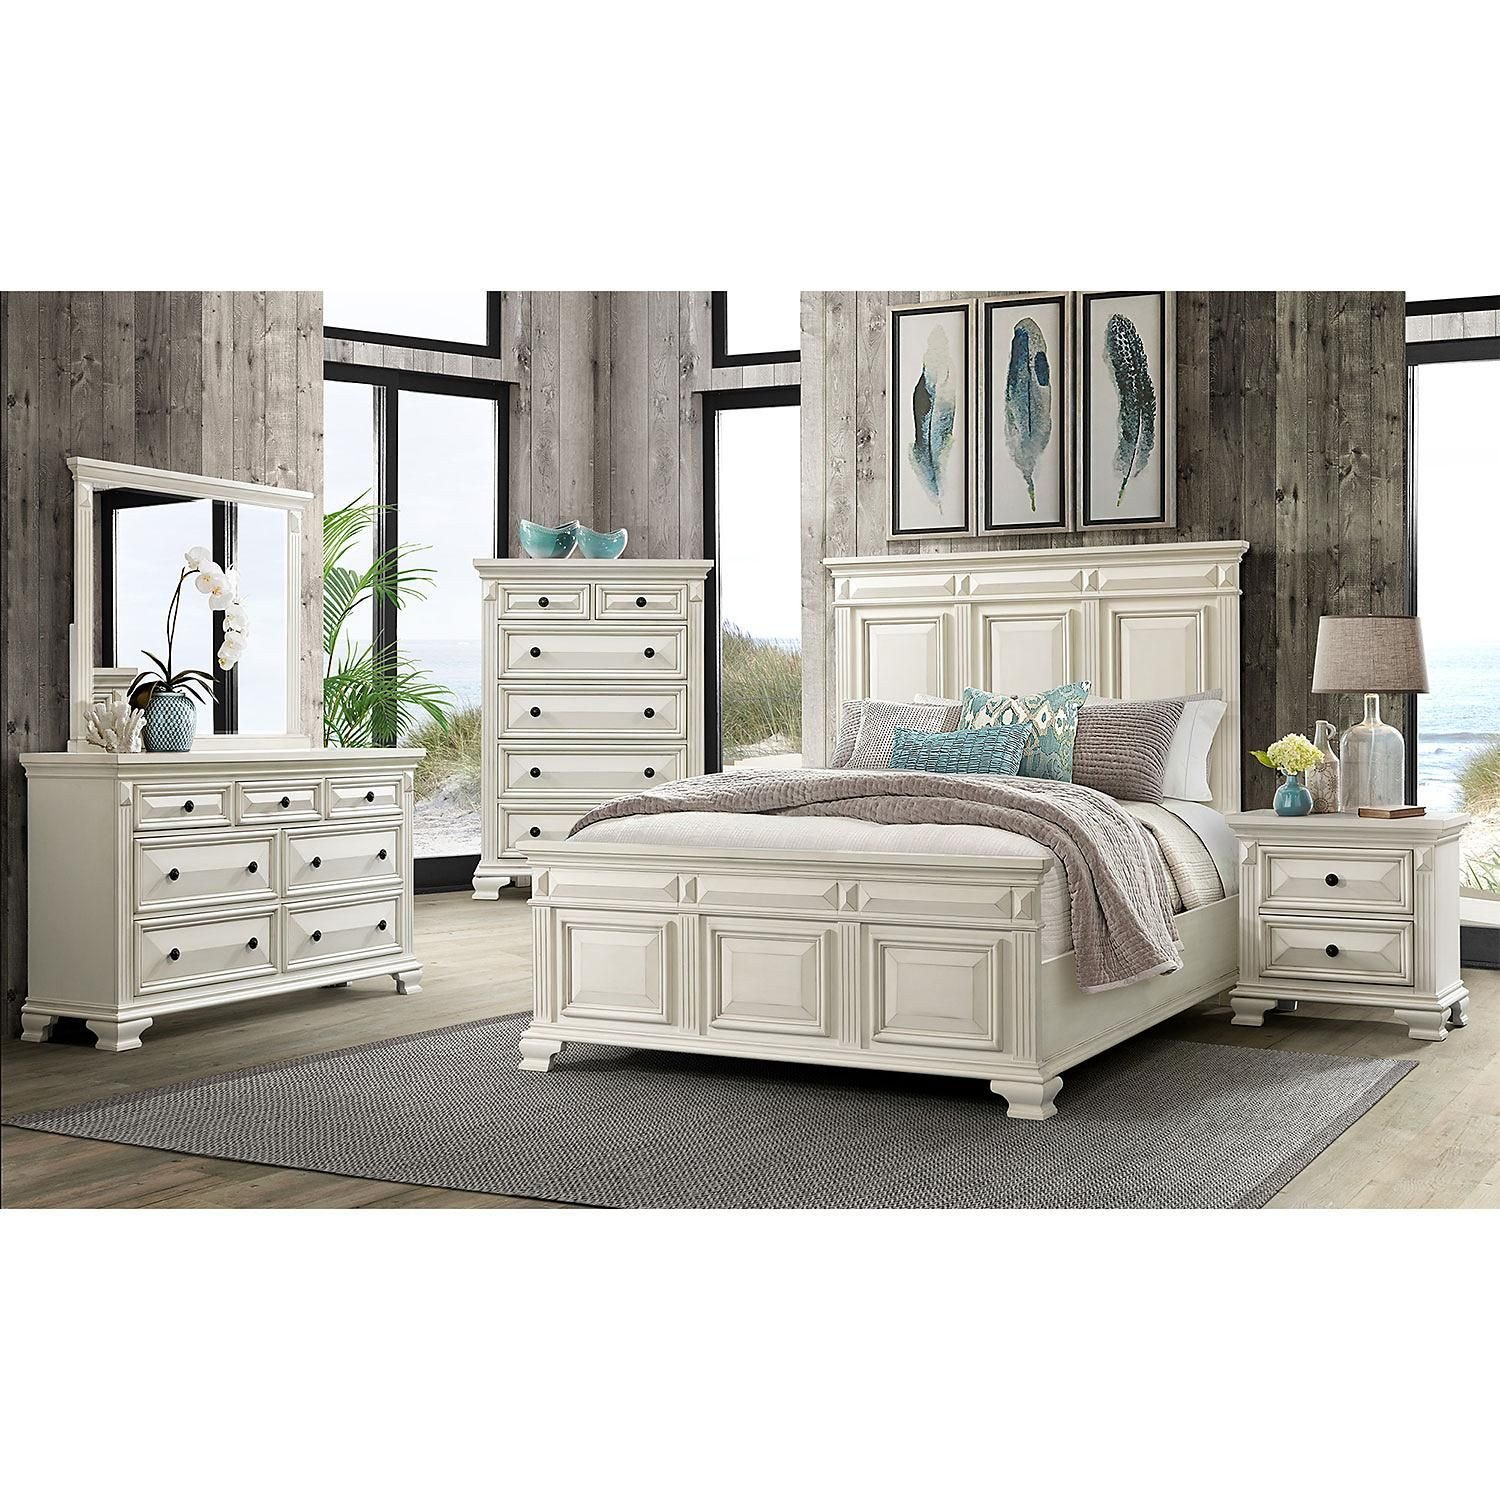 White Washed Bedroom Furniture Set Beautiful $1599 00 society Den Trent Panel 6 Piece King Bedroom Set